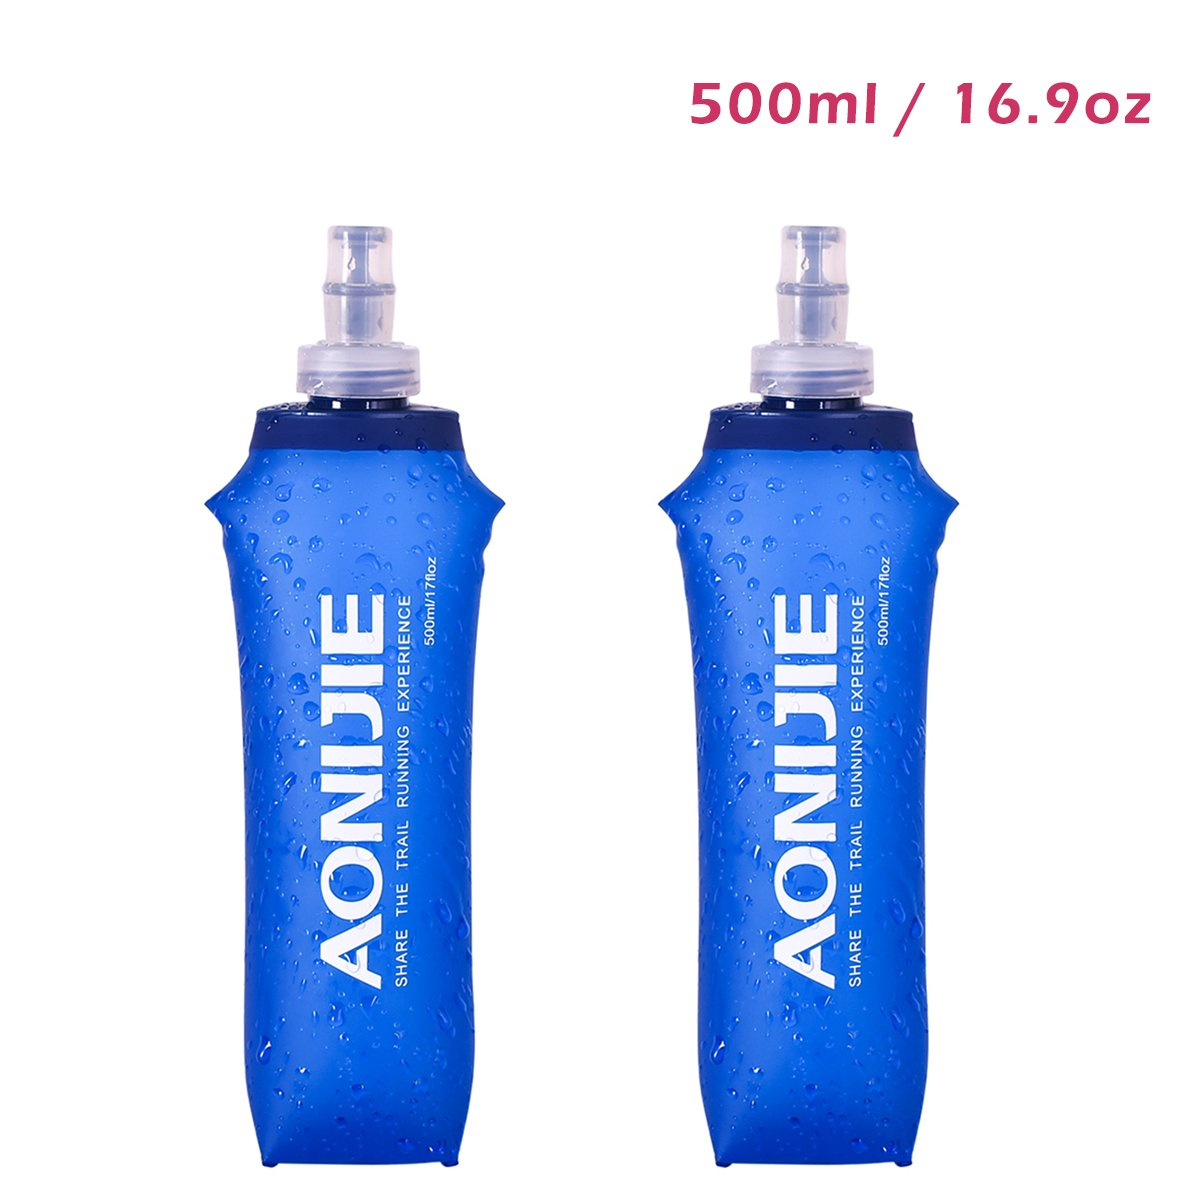 JEELAD BPA-Free Leak-Proof TPU Soft Running Water Bottles for Hydration Pack Vest - Ideal for Running Hiking Cycling (500ml (16.9oz) - 2 Pack)